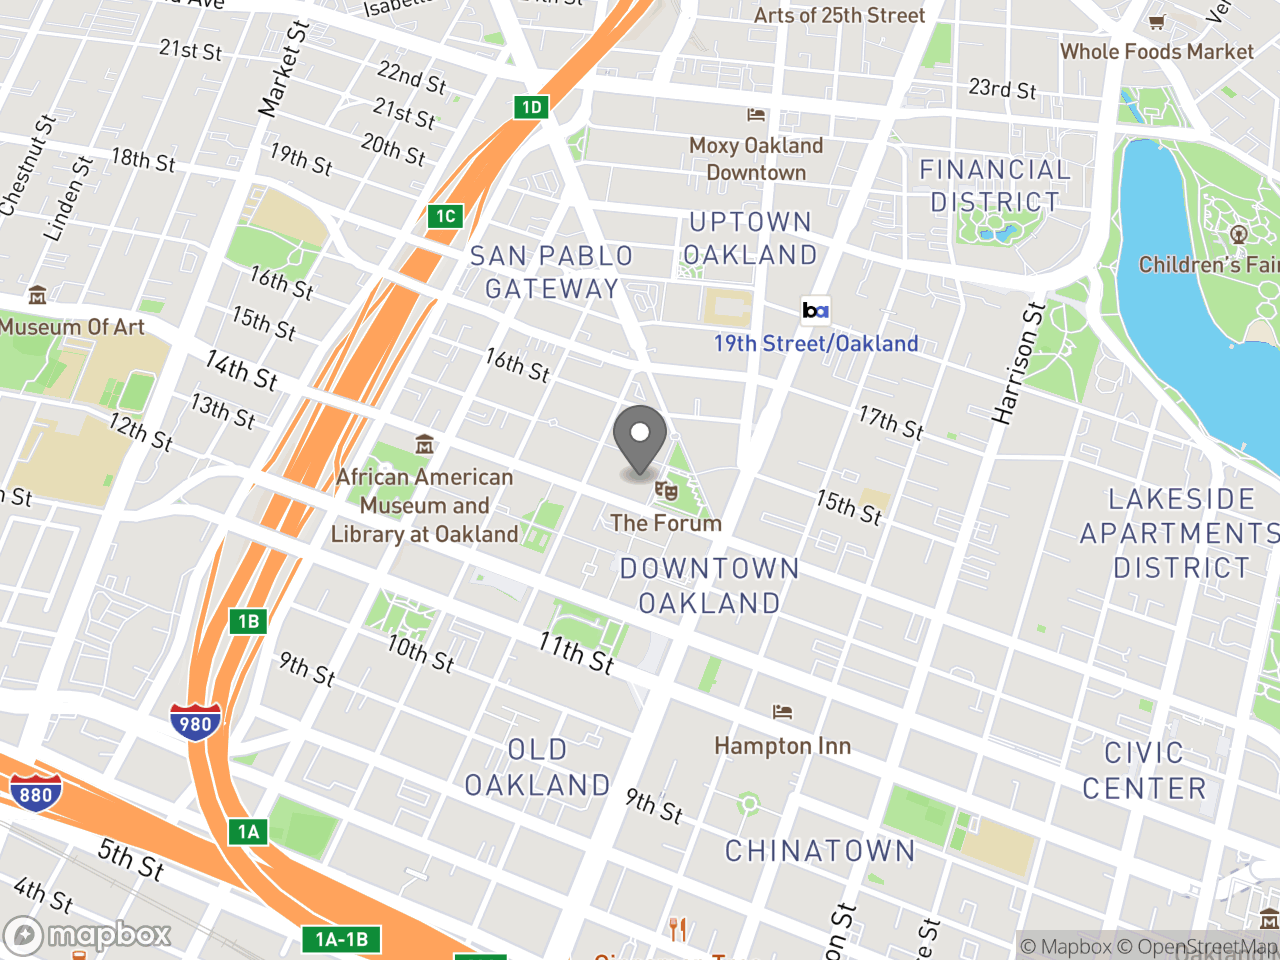 Map location for Newsroom, located at 1 Frank H Ogawa Plaza in Oakland, CA 94612